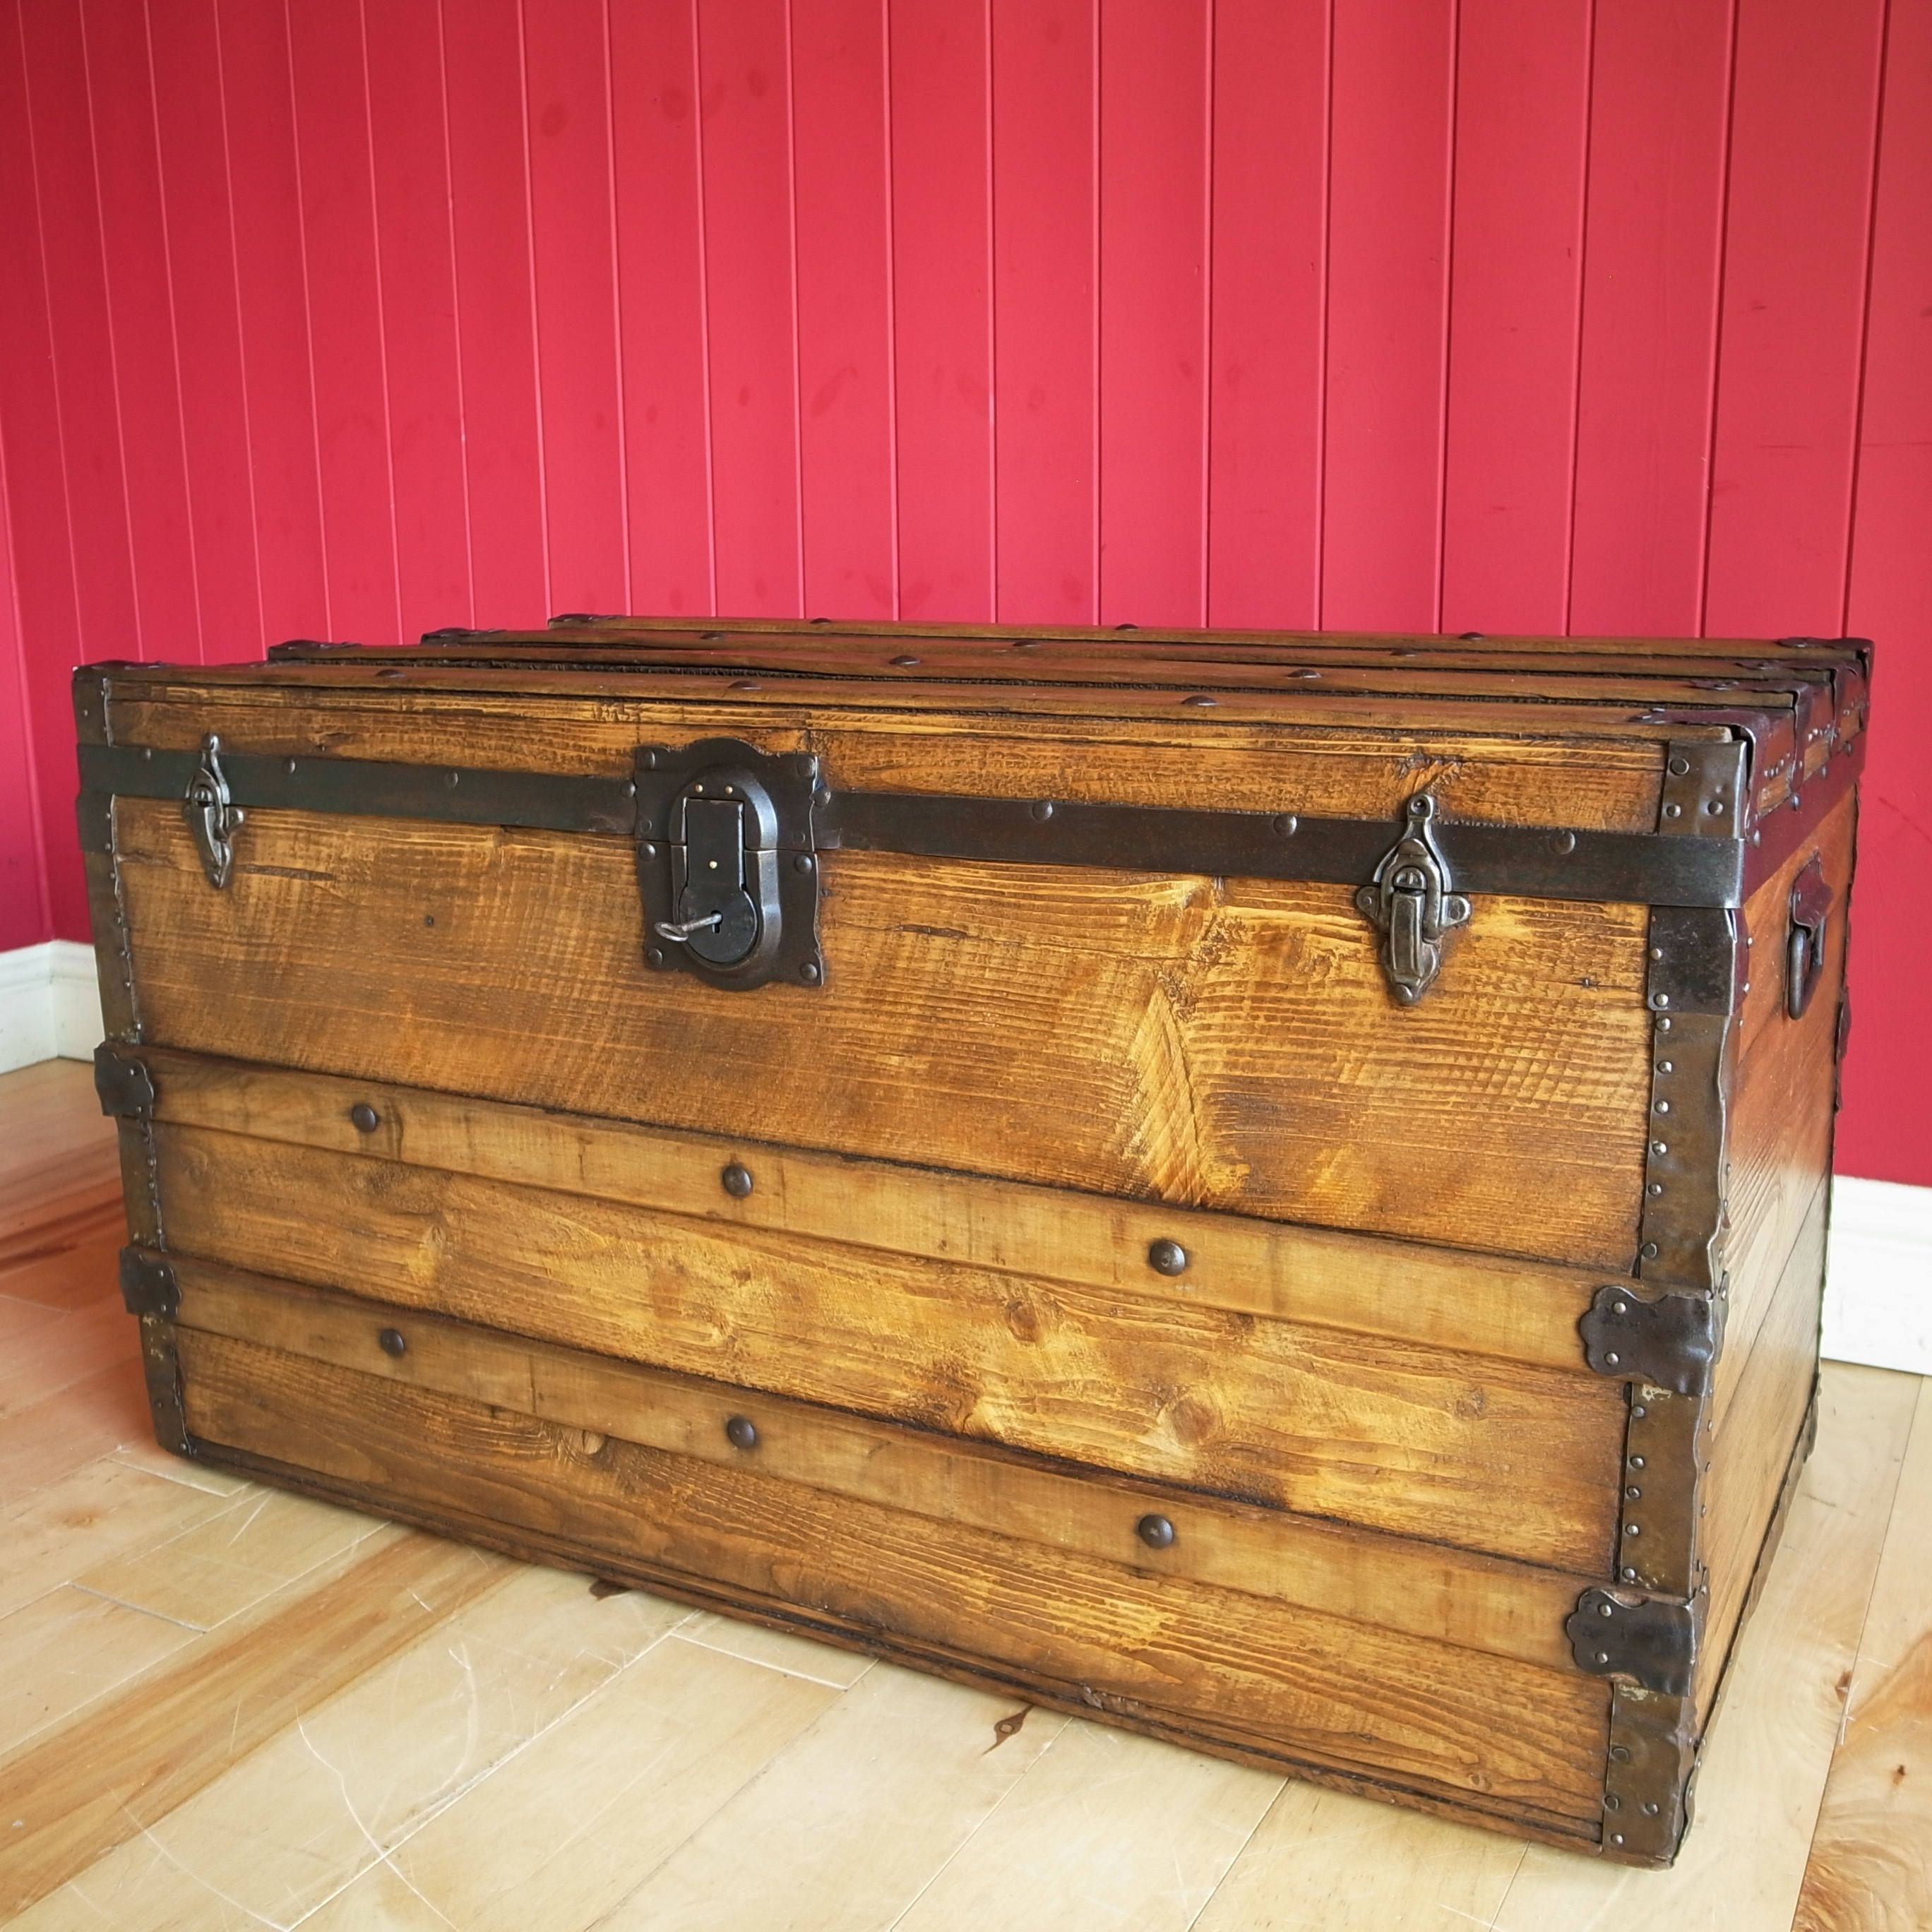 VINTAGE STEAMER TRUNK Coffee Table Storage Chest Old Travel Trunk